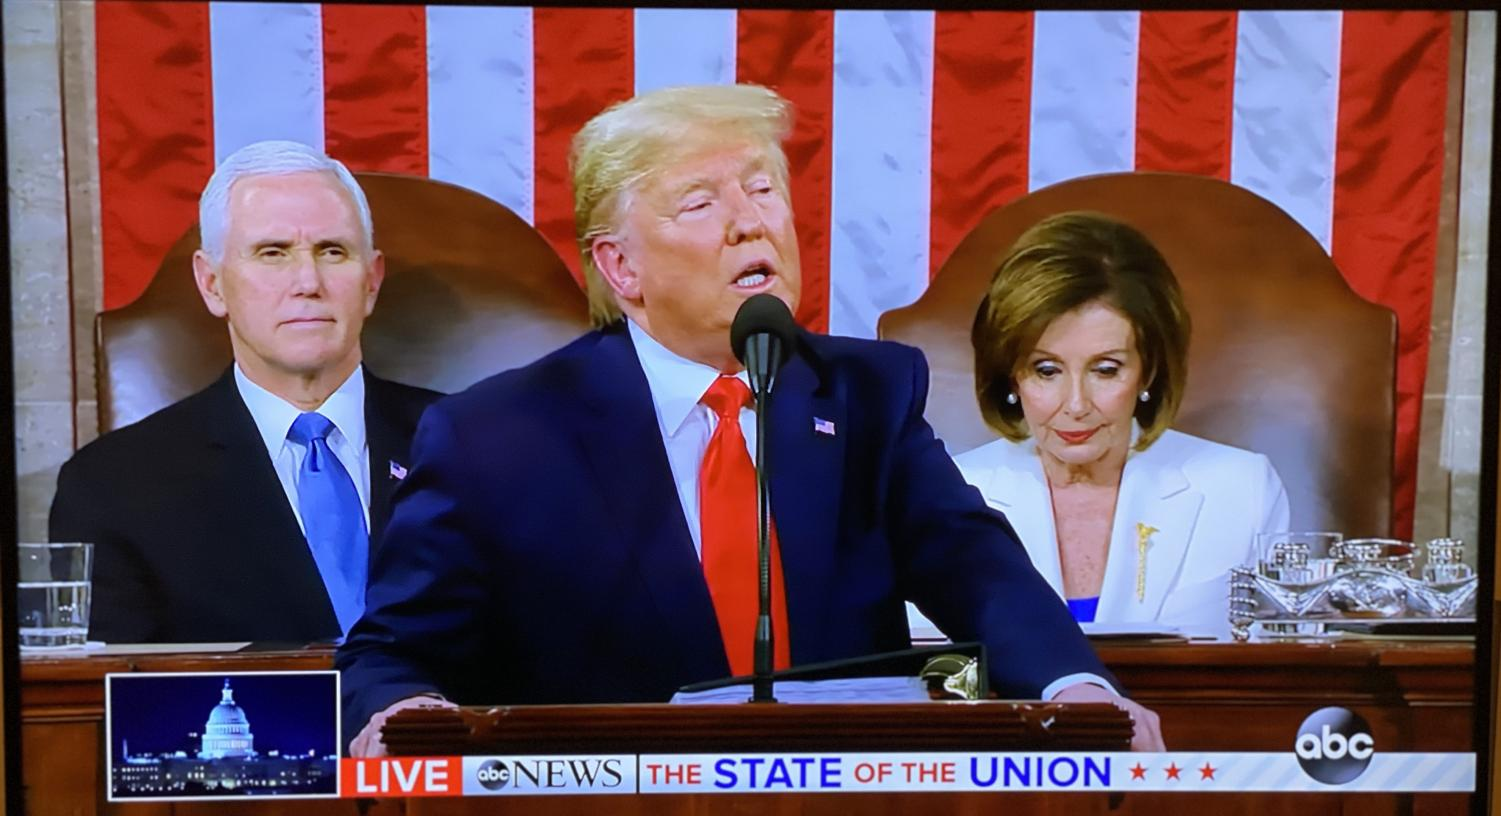 President Donald J. Trump delivers his third State of the Union address before the U.S. Congress on Tuesday.